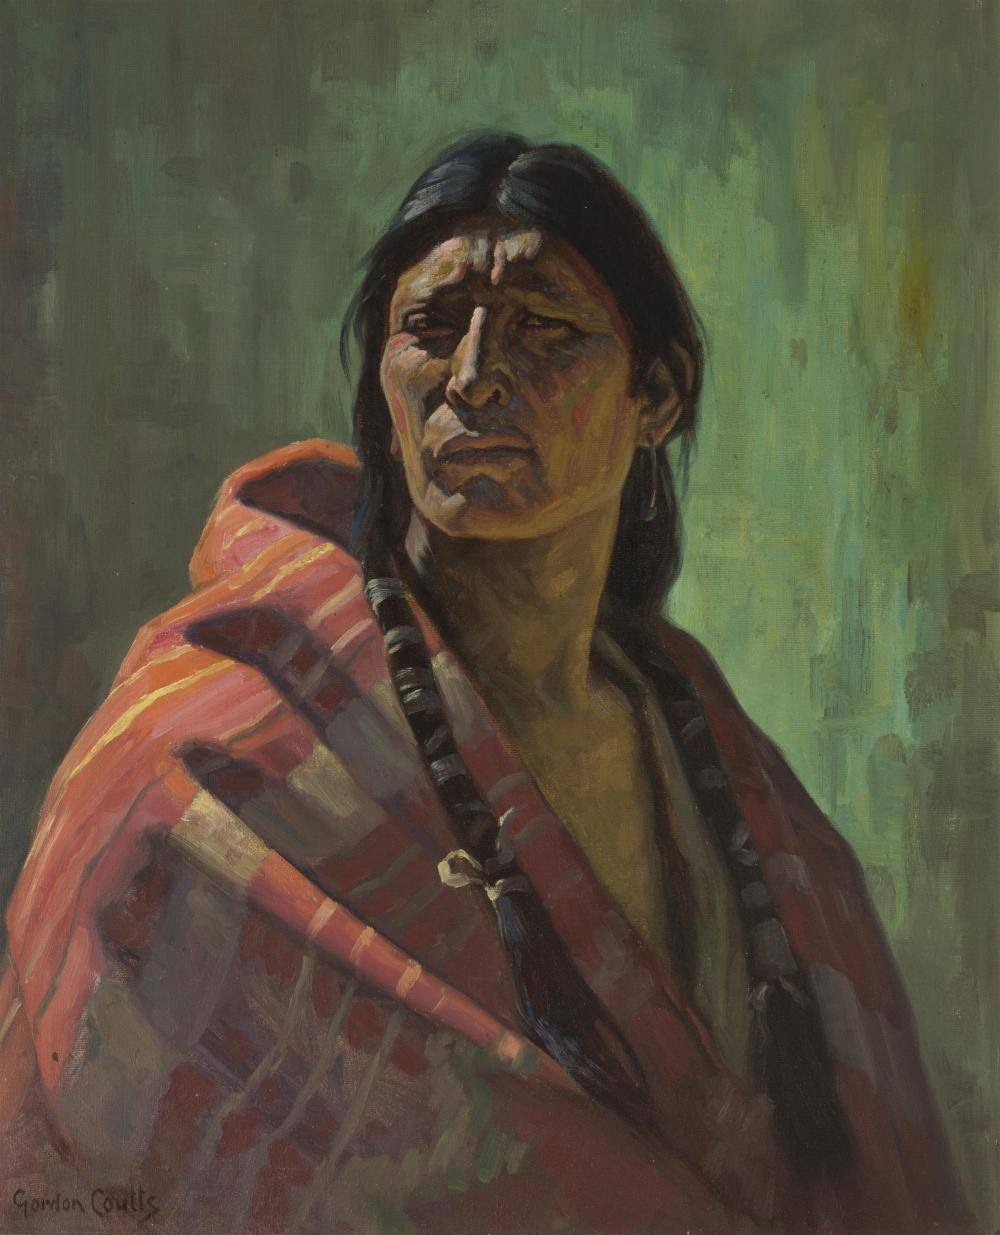 "Gordon Coutts, (1868-1937 Palm Springs, CA), Young American Indian brave, Oil on canvas, 29.5"" H x 24"" W"